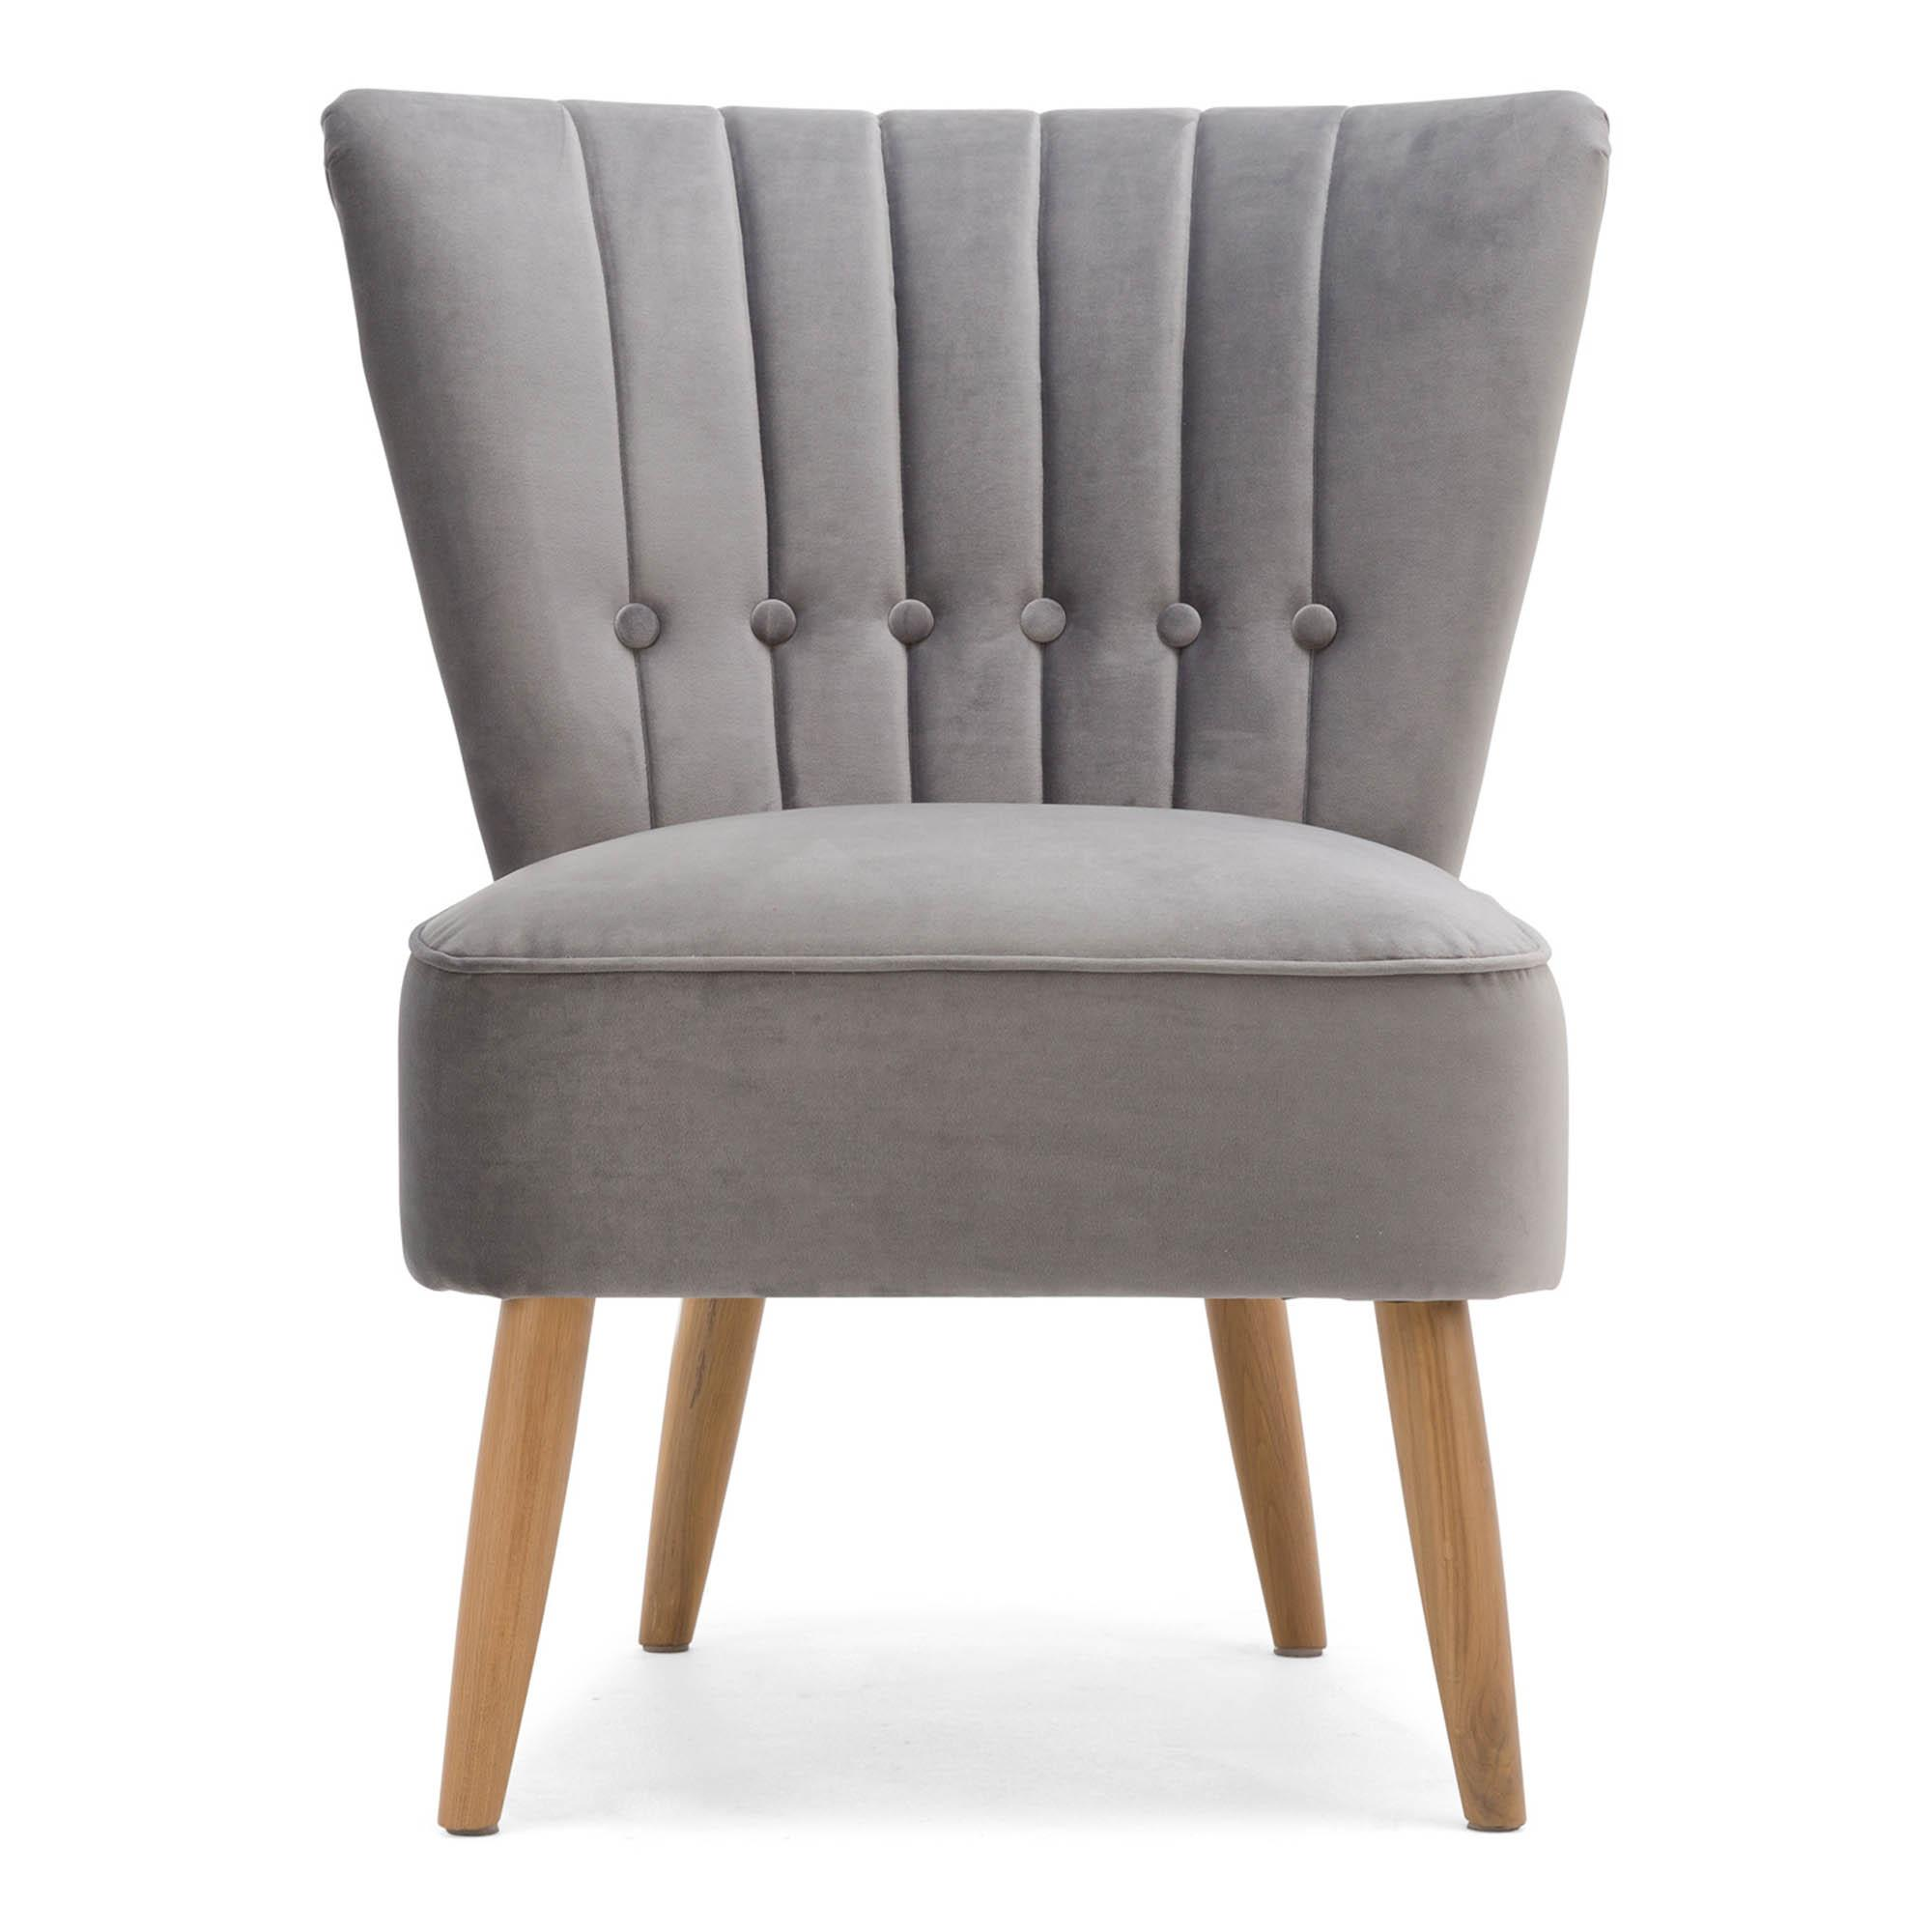 Isla Chair - Light Grey